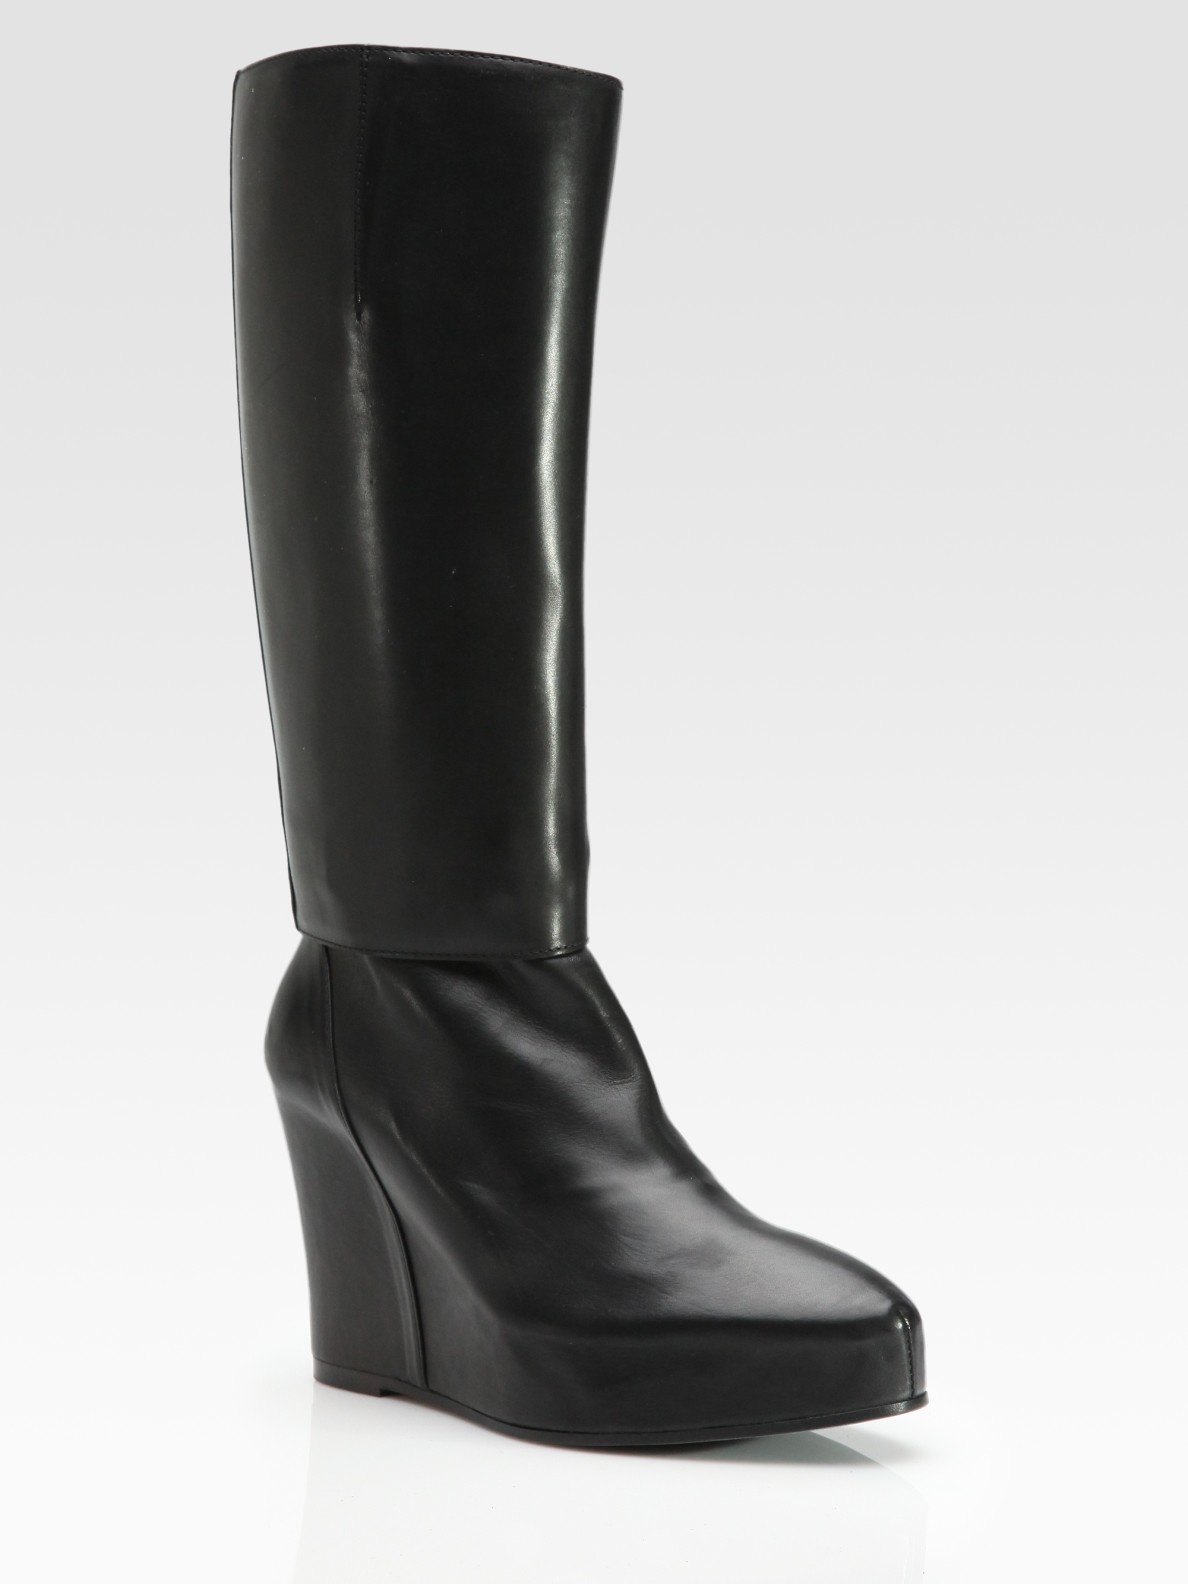 demeulemeester leather mid calf wedge boots in black